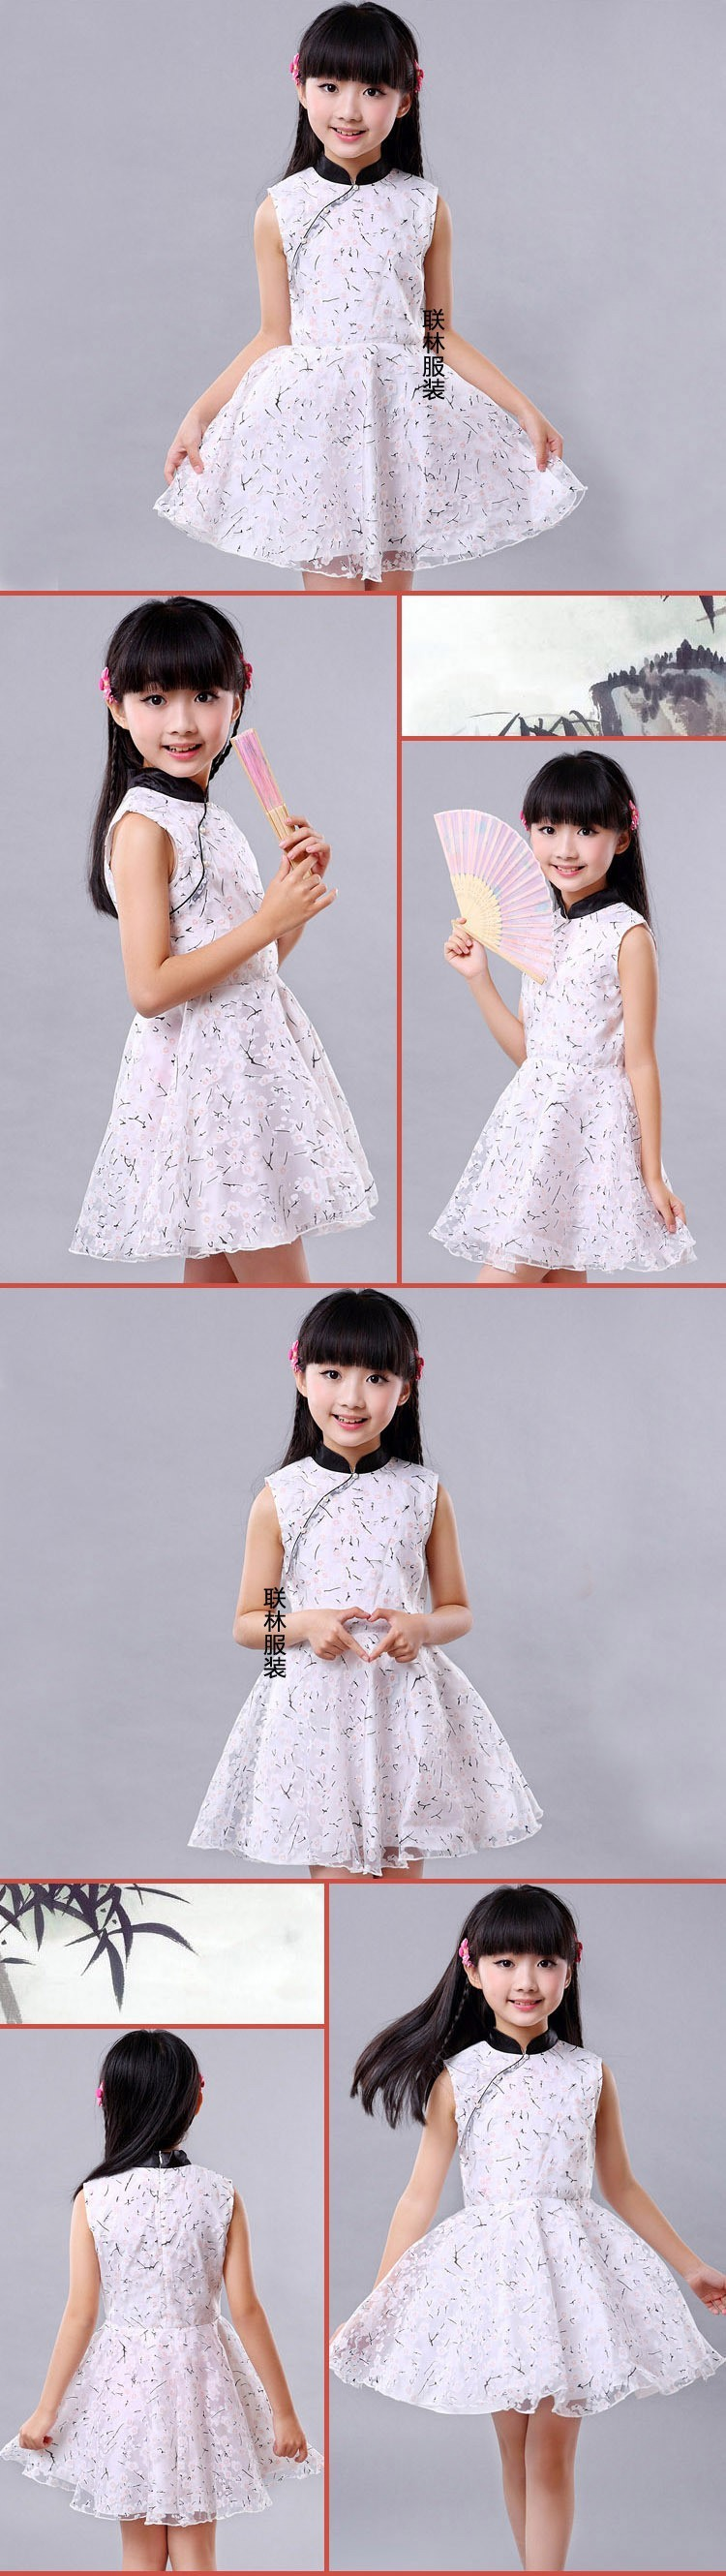 gh Quality Cute Kid Acquard Cotton Dress Vintage Chinese Baby Girl